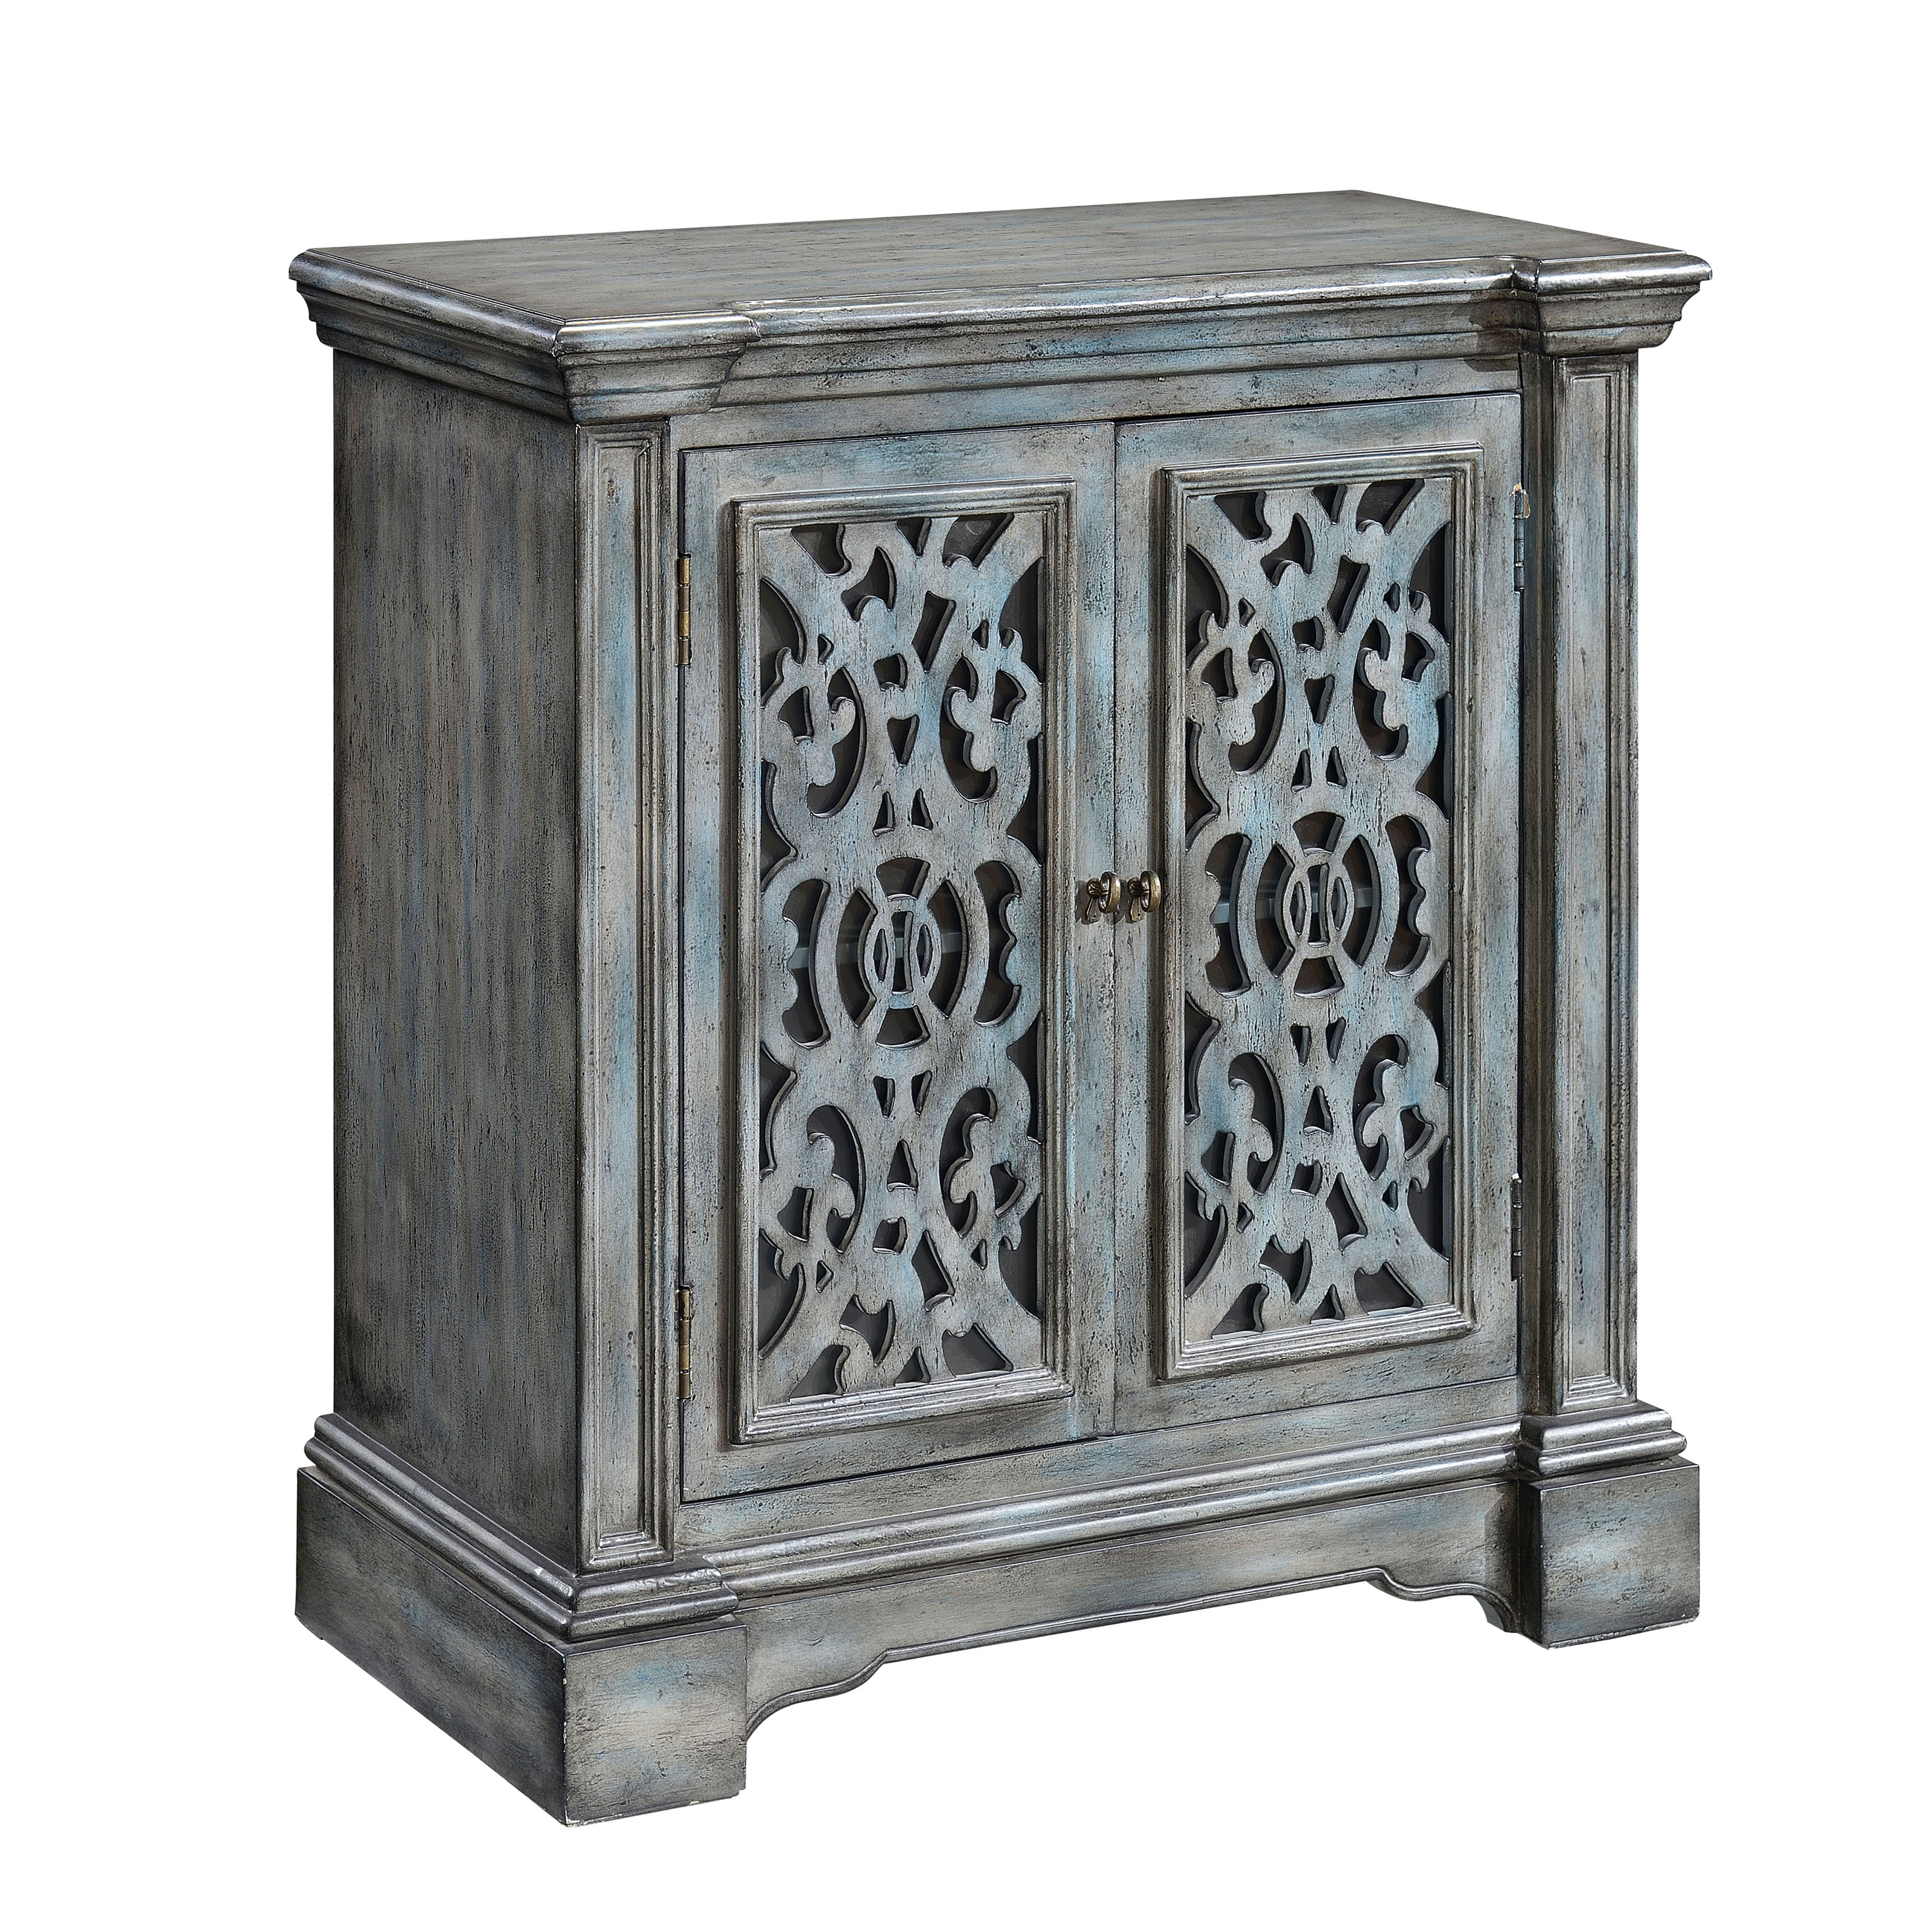 Intriguing Coast To Coast Chippendale Door Cabinet Chippendale Buffet Sideboard Buffets Sideboards Compare Prices Buffet Buffets Upgrade Buffet Buffets Groupon nice food Buffet Of Buffets